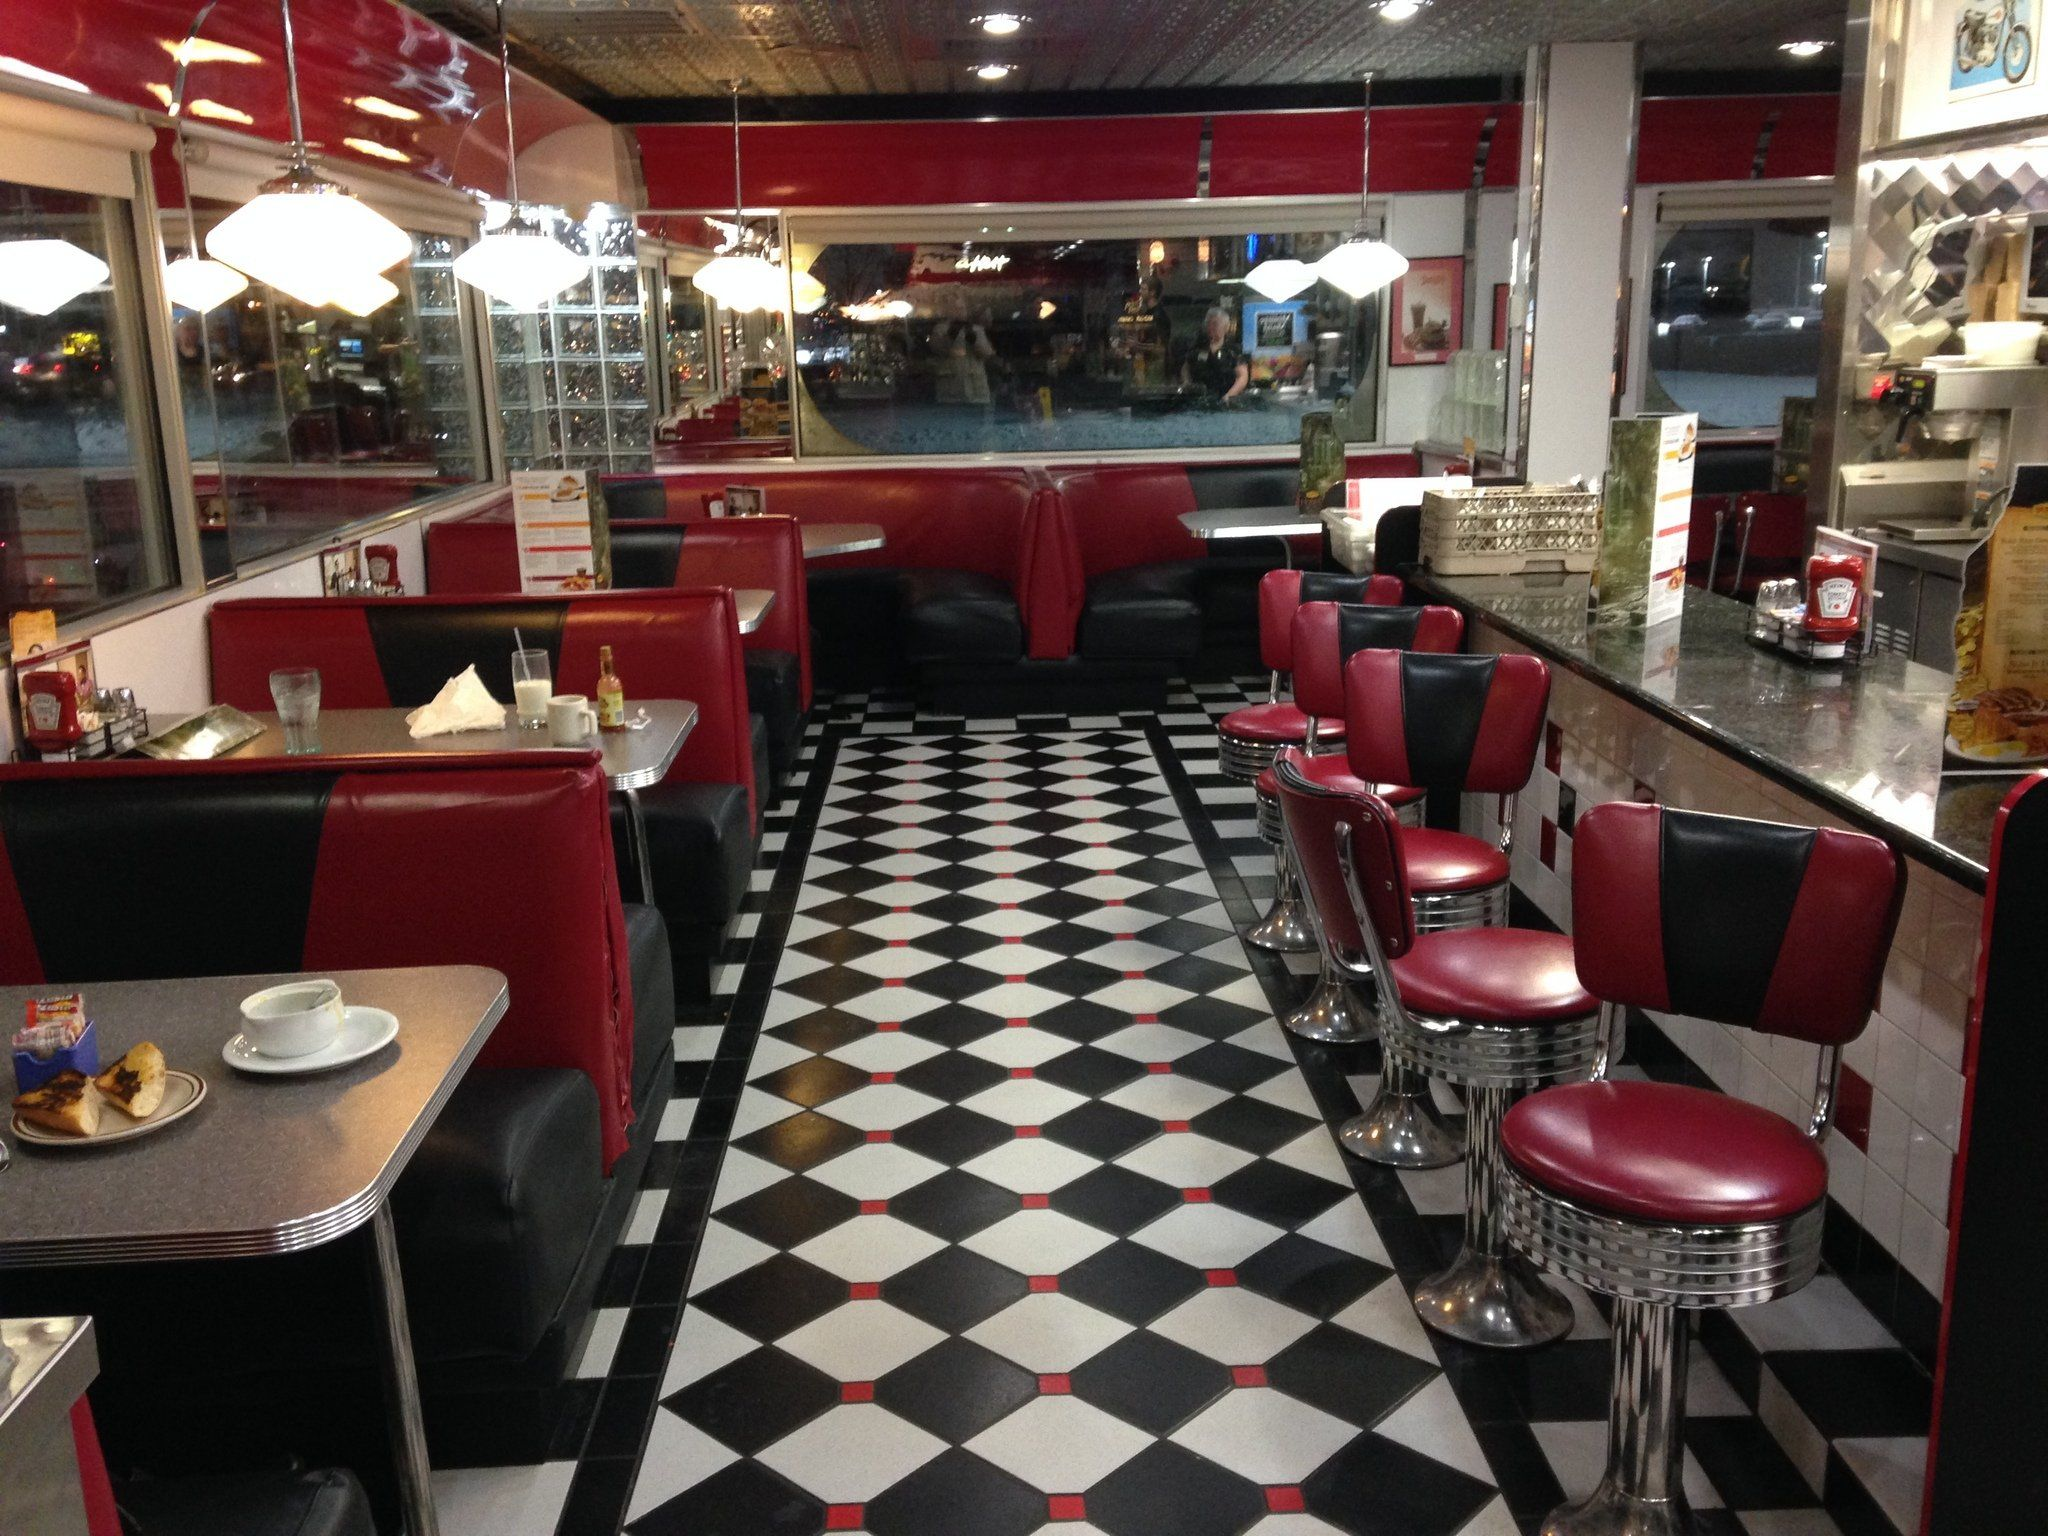 Pin by Karen Posard on Diners & Drive Ins (retro look ...  Pin by Karen Po...